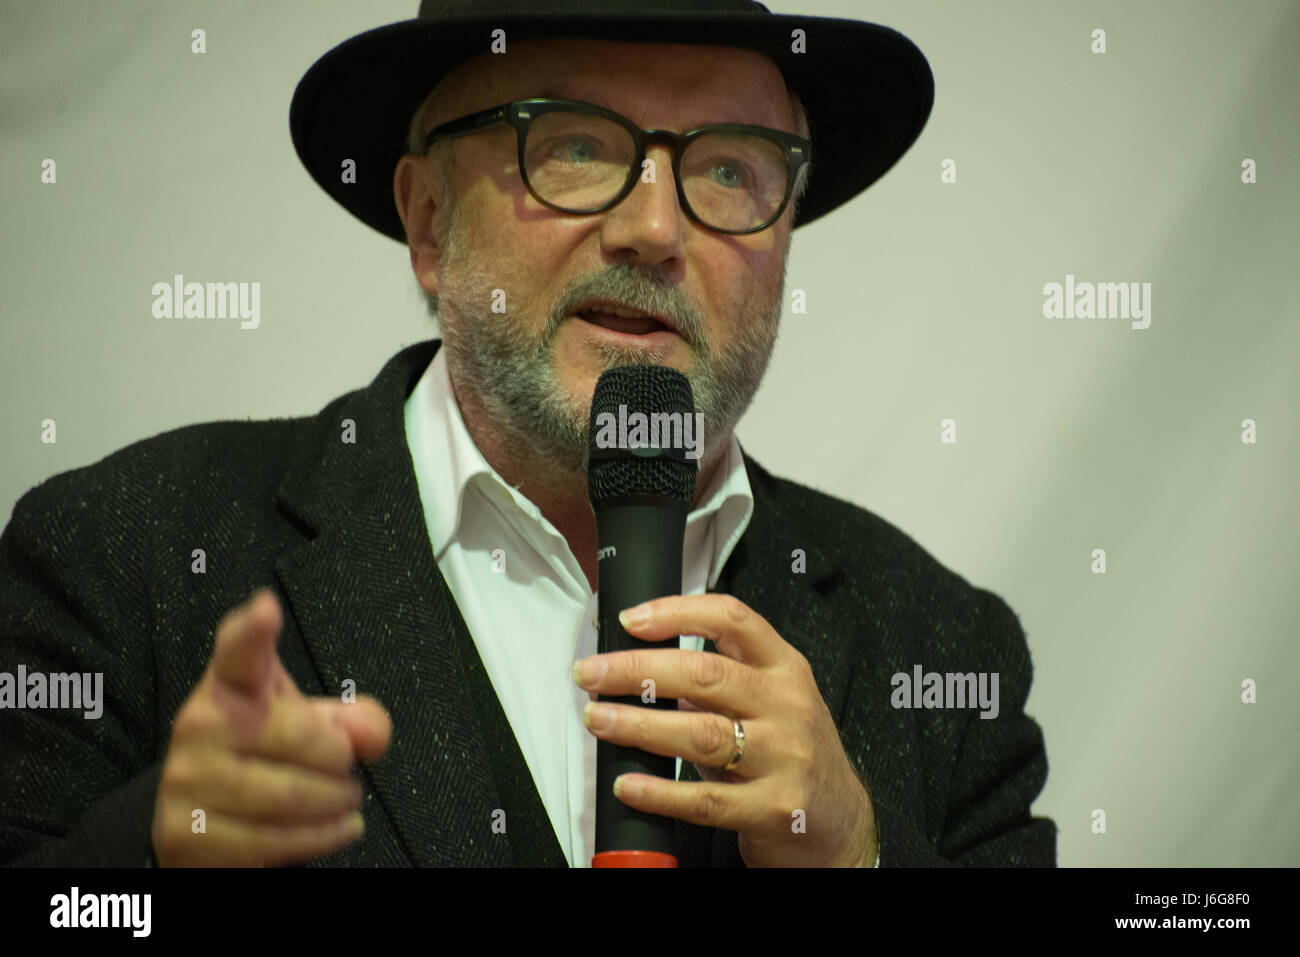 Stockport, UK. 21st May, 2017. George Galloway, Author, Broadcaster and Independent Parliamentary candidate for - Stock Image